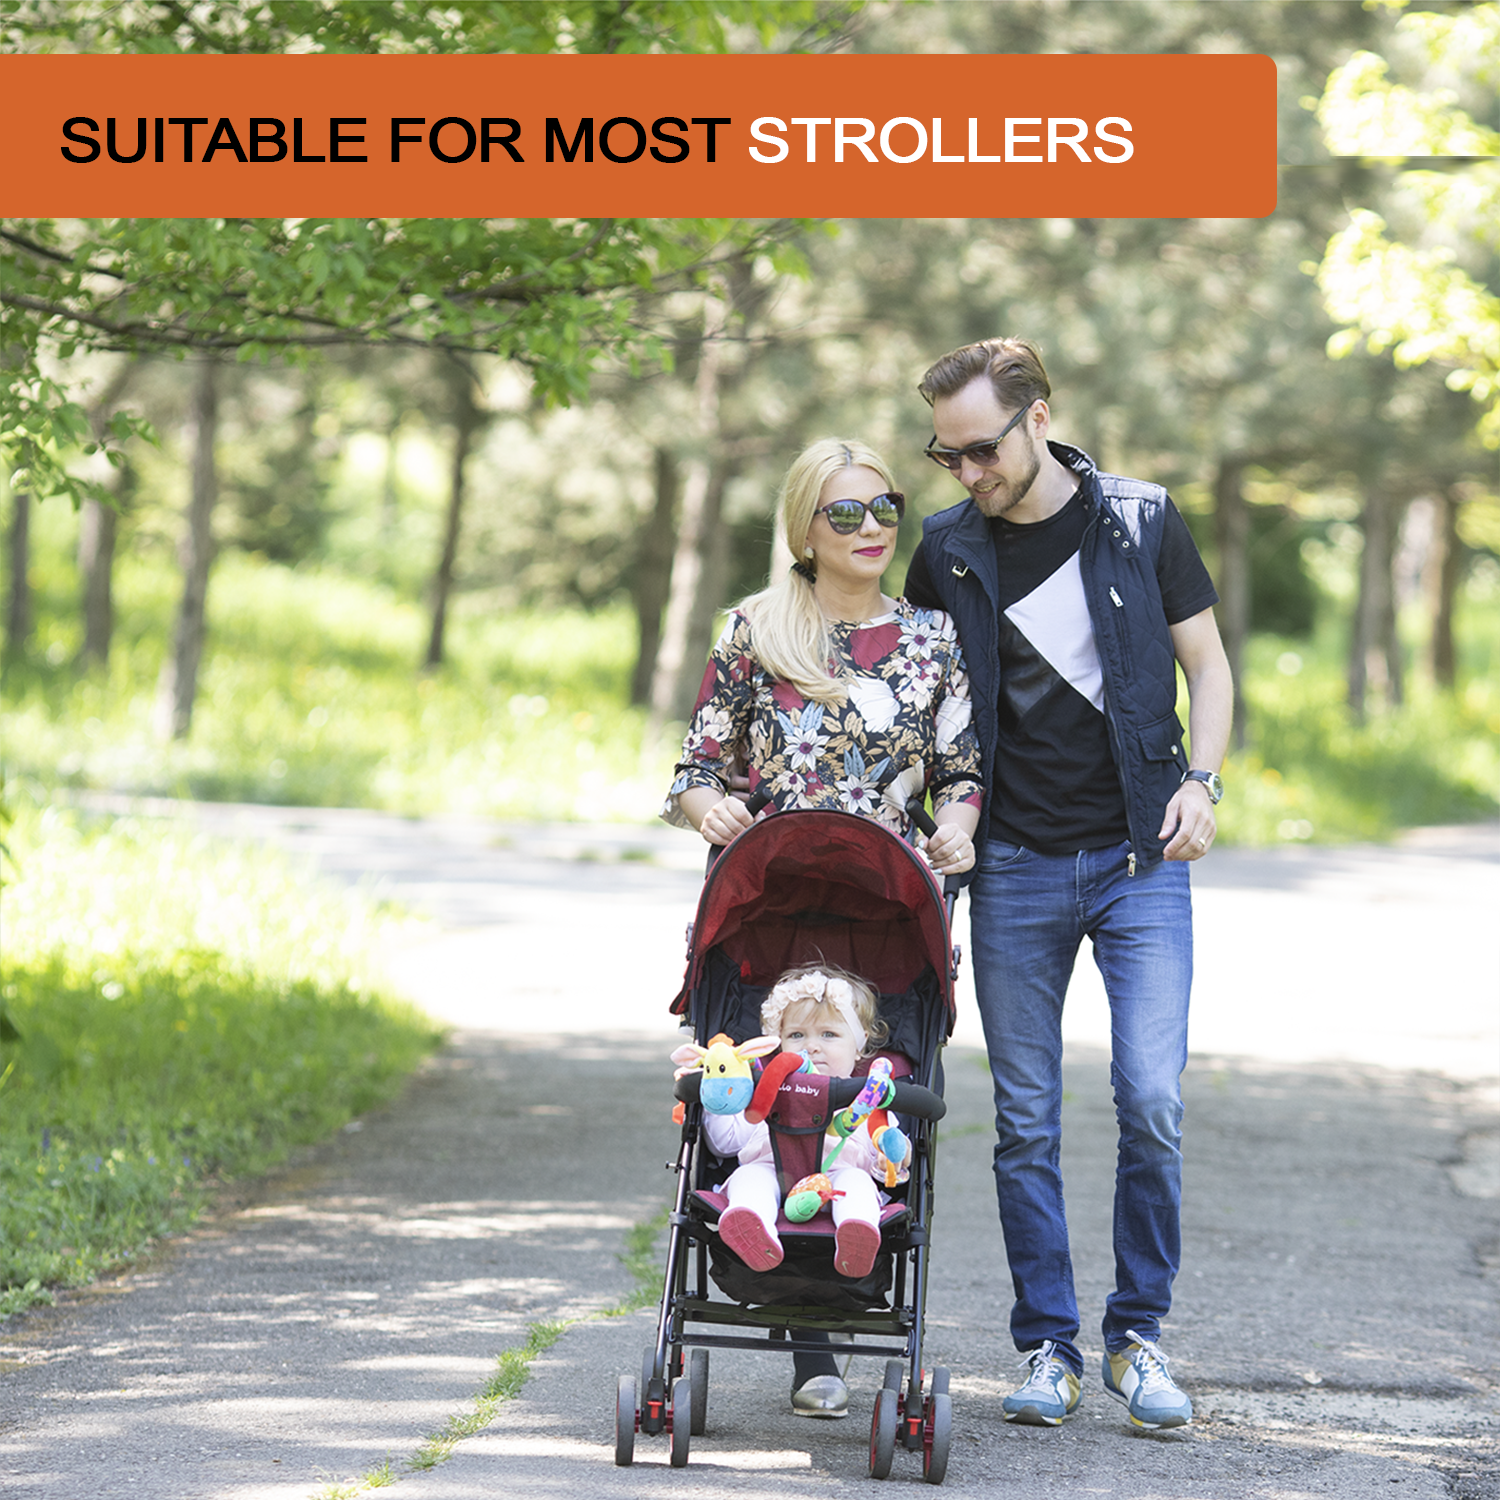 Try the McKardon Allinone stoller, car seat and crib toy